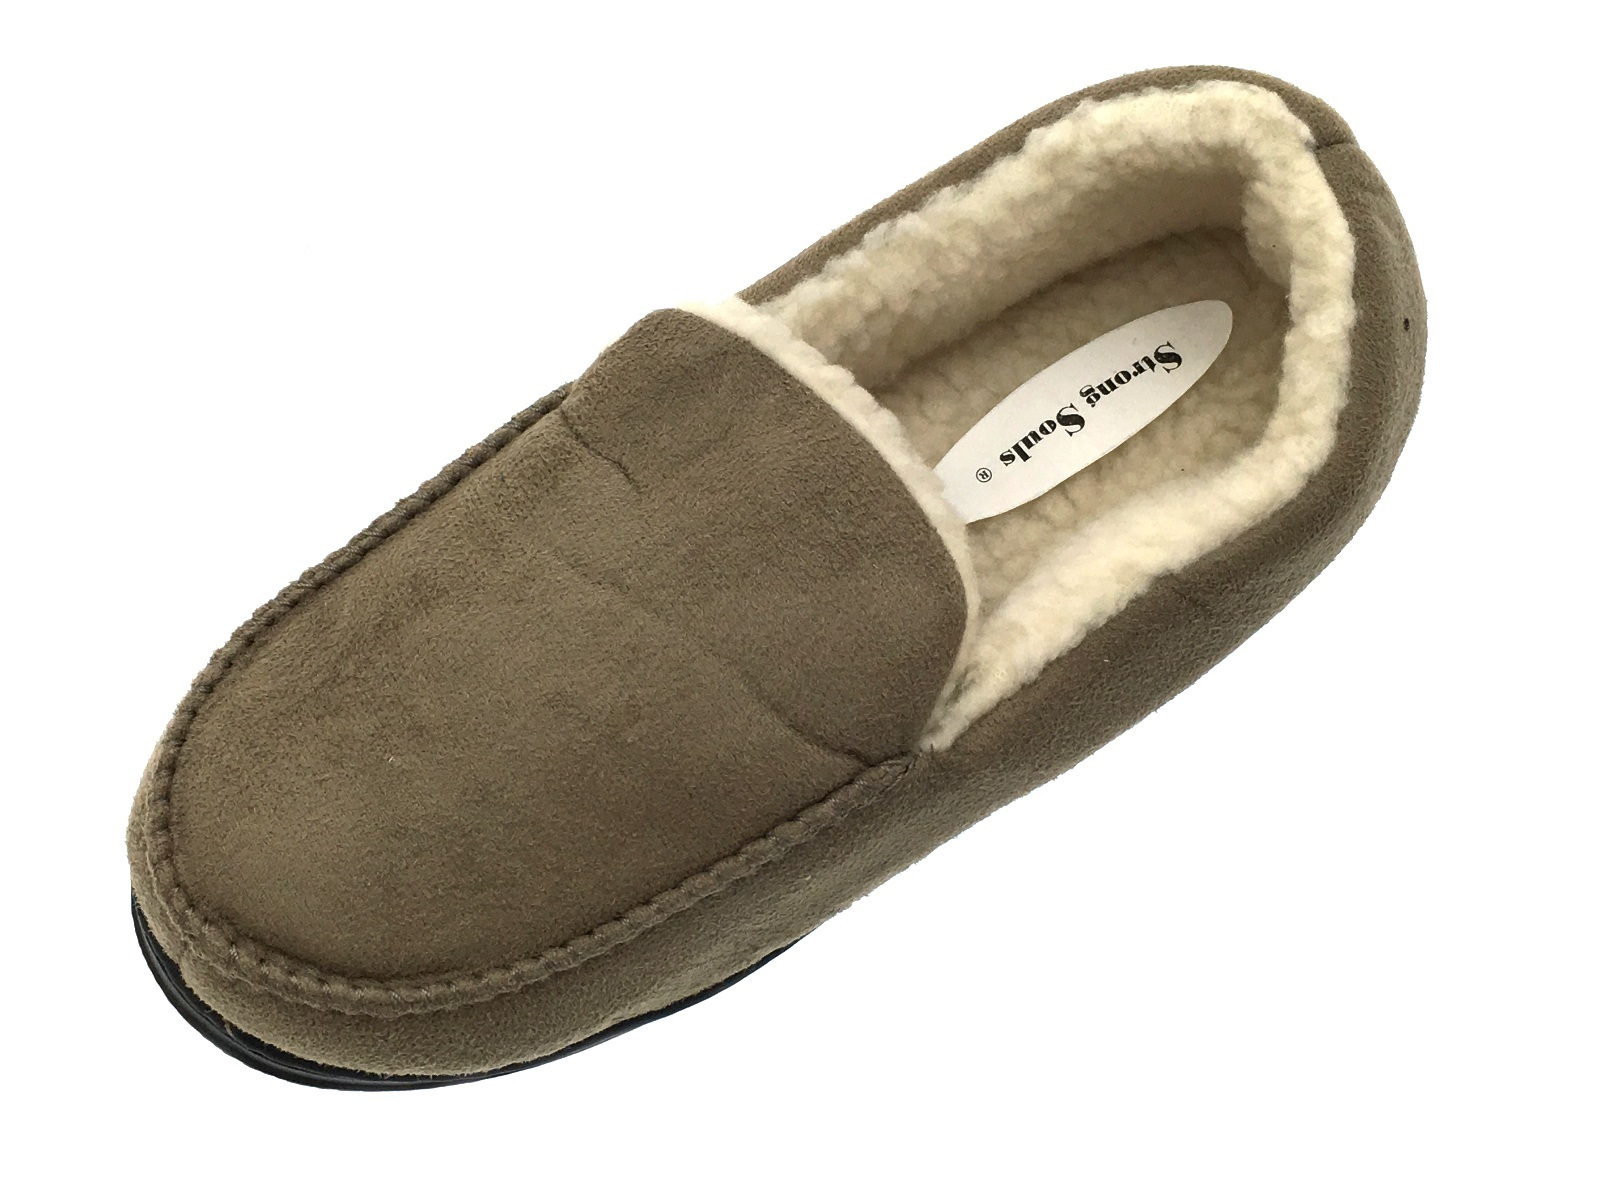 Mens Moccasins Faux Suede Slippers Warm Winter Faux Fur Lined Shoes Size Uk 7 12 Ebay